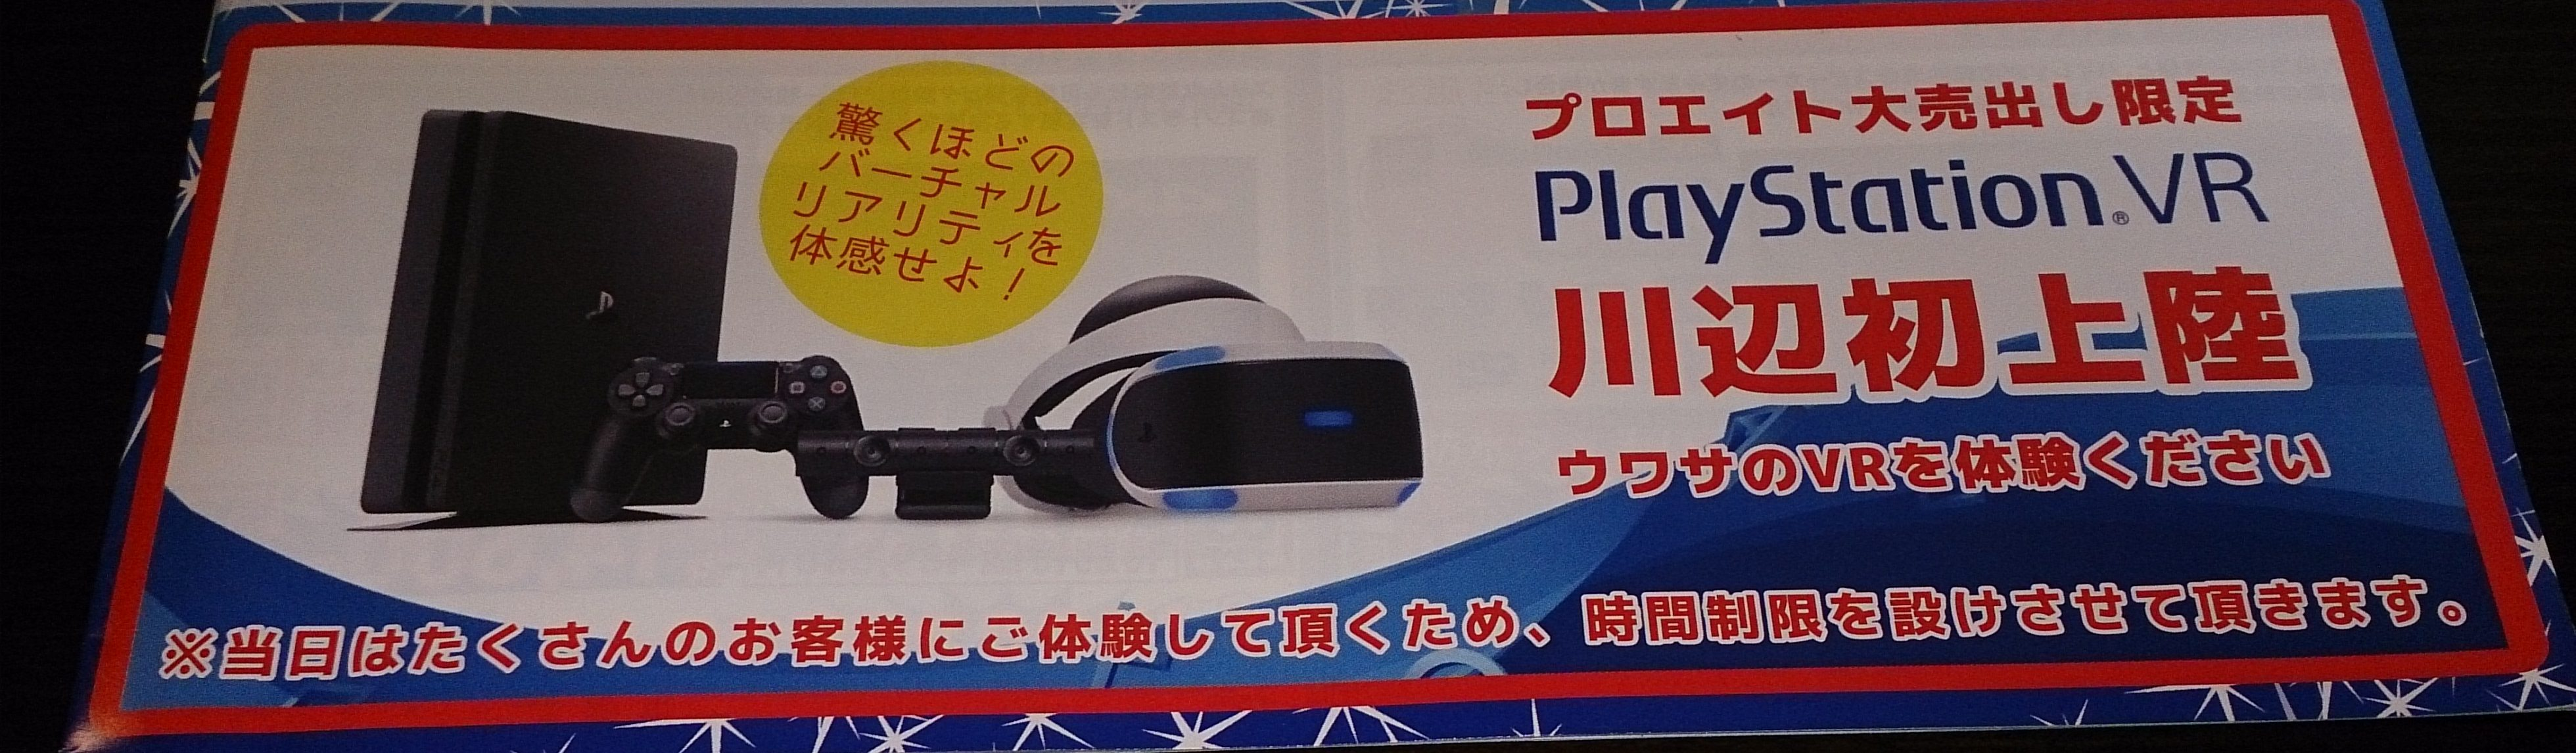 VR play station 南九州市で体験会期間限定で!